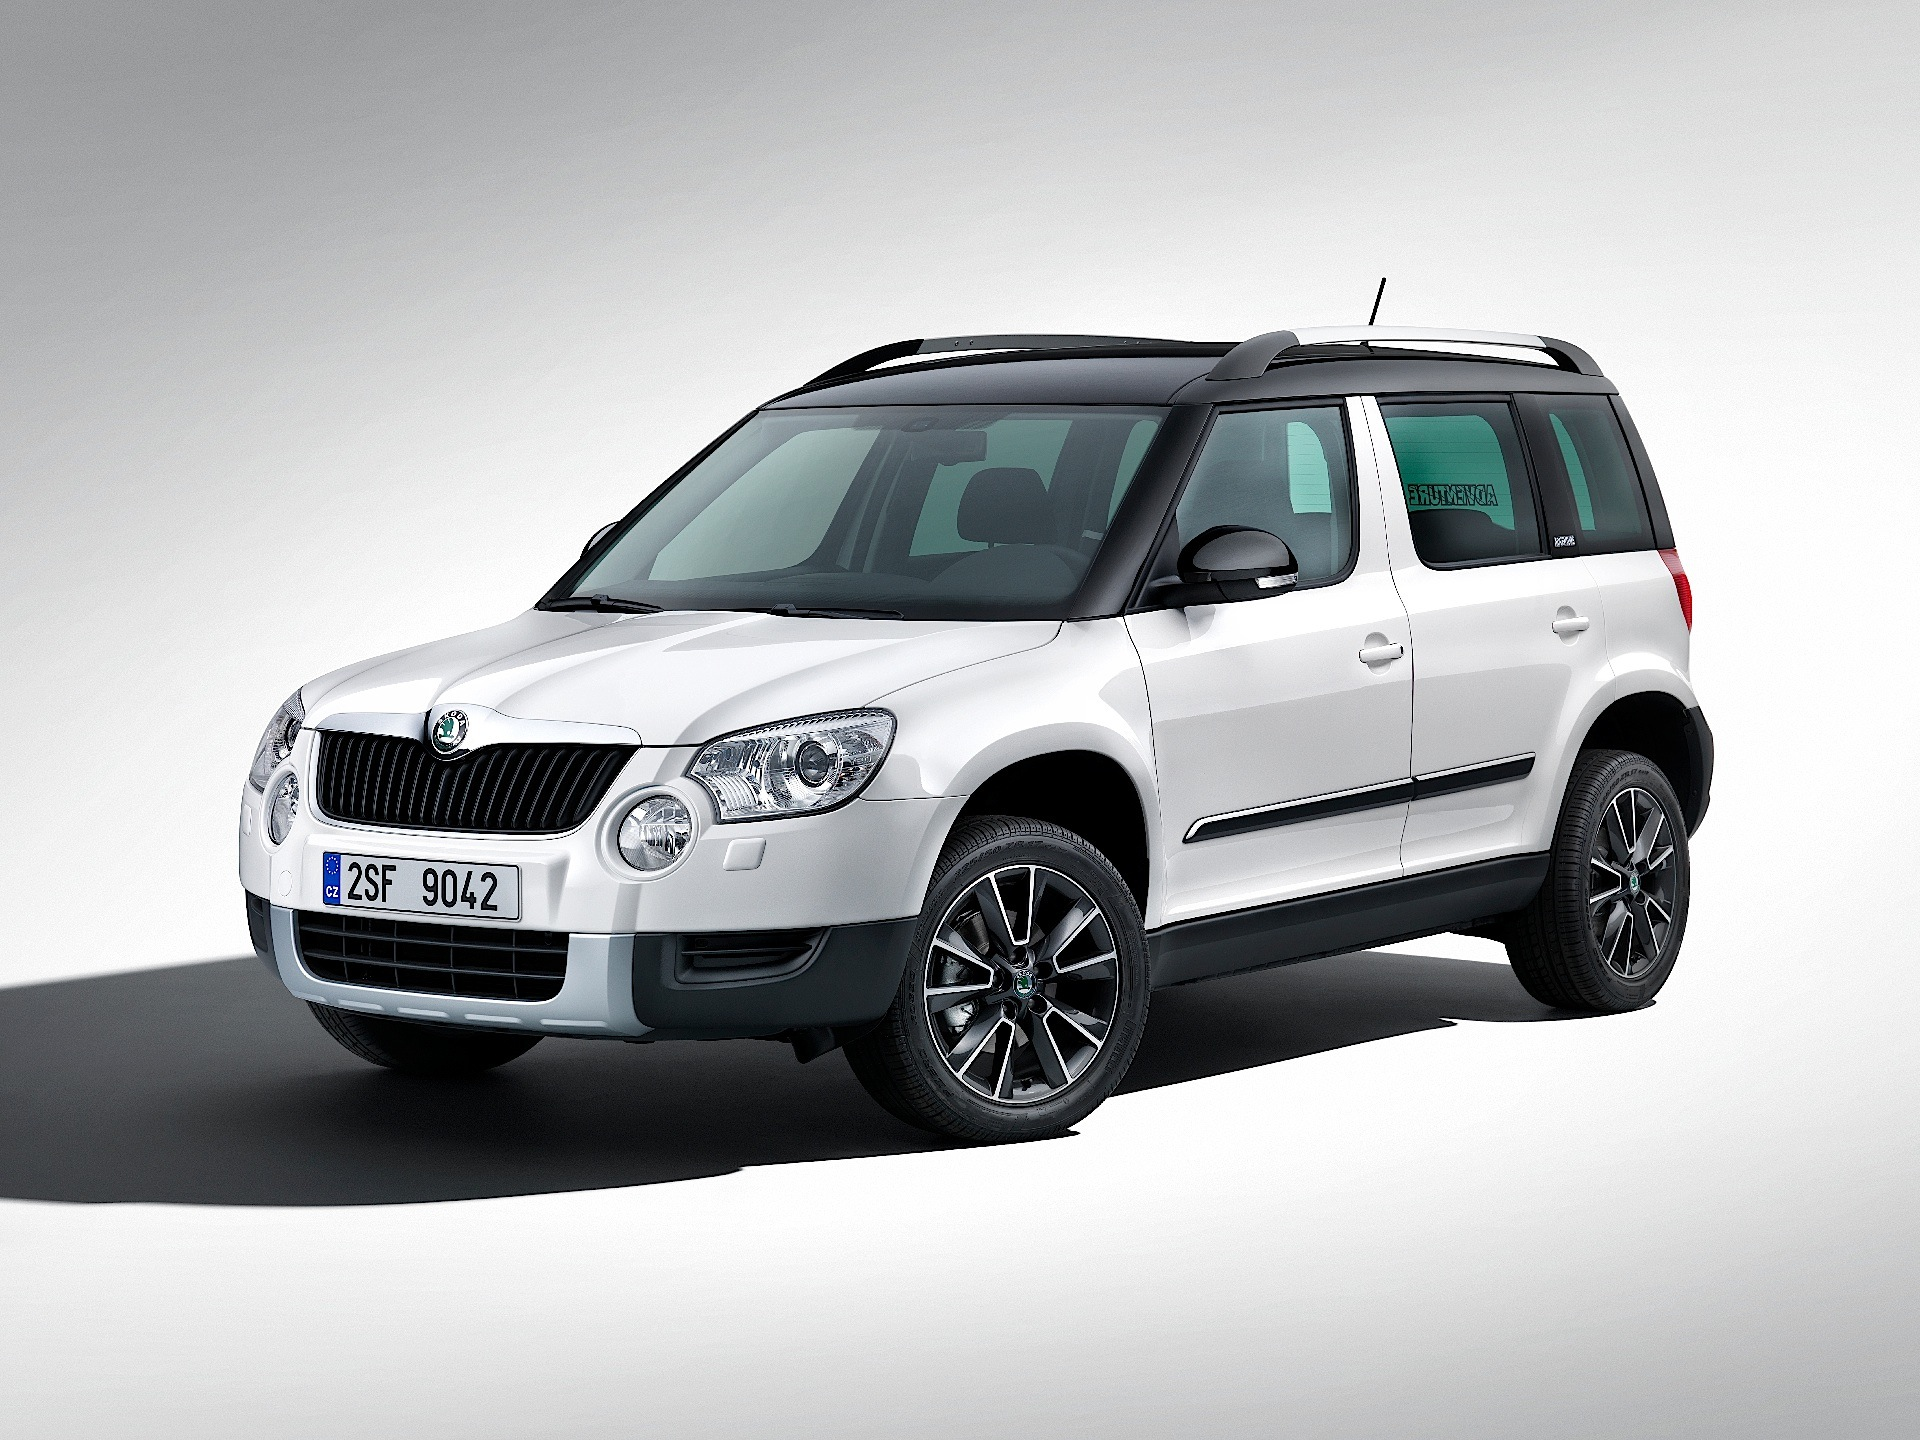 skoda yeti 2009 2010 2011 2012 2013 autoevolution. Black Bedroom Furniture Sets. Home Design Ideas